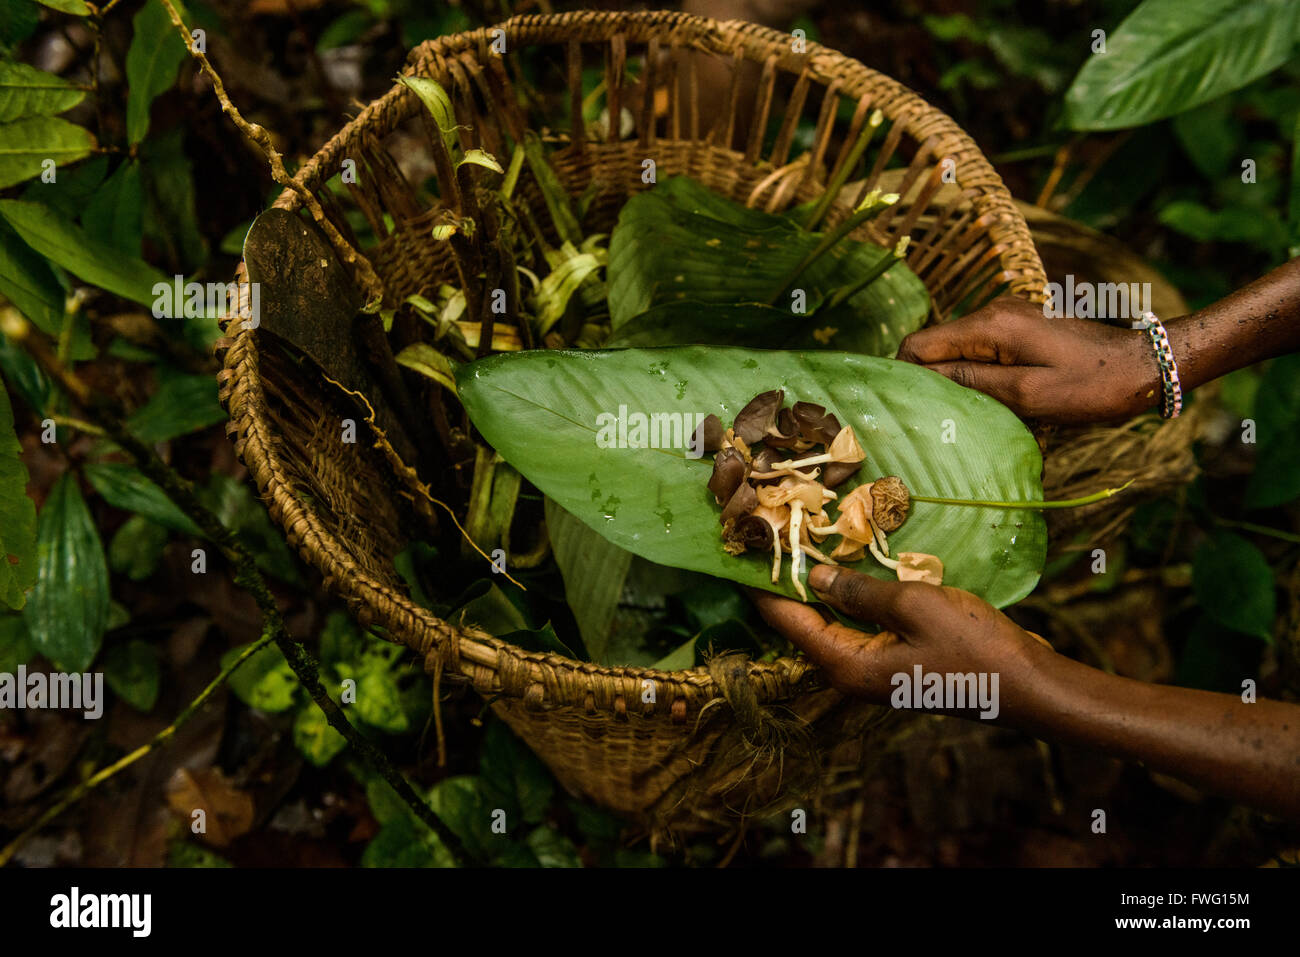 Bayaka Pygmies in the equatorial rainforest, Central African Republic, Africa Stock Photo